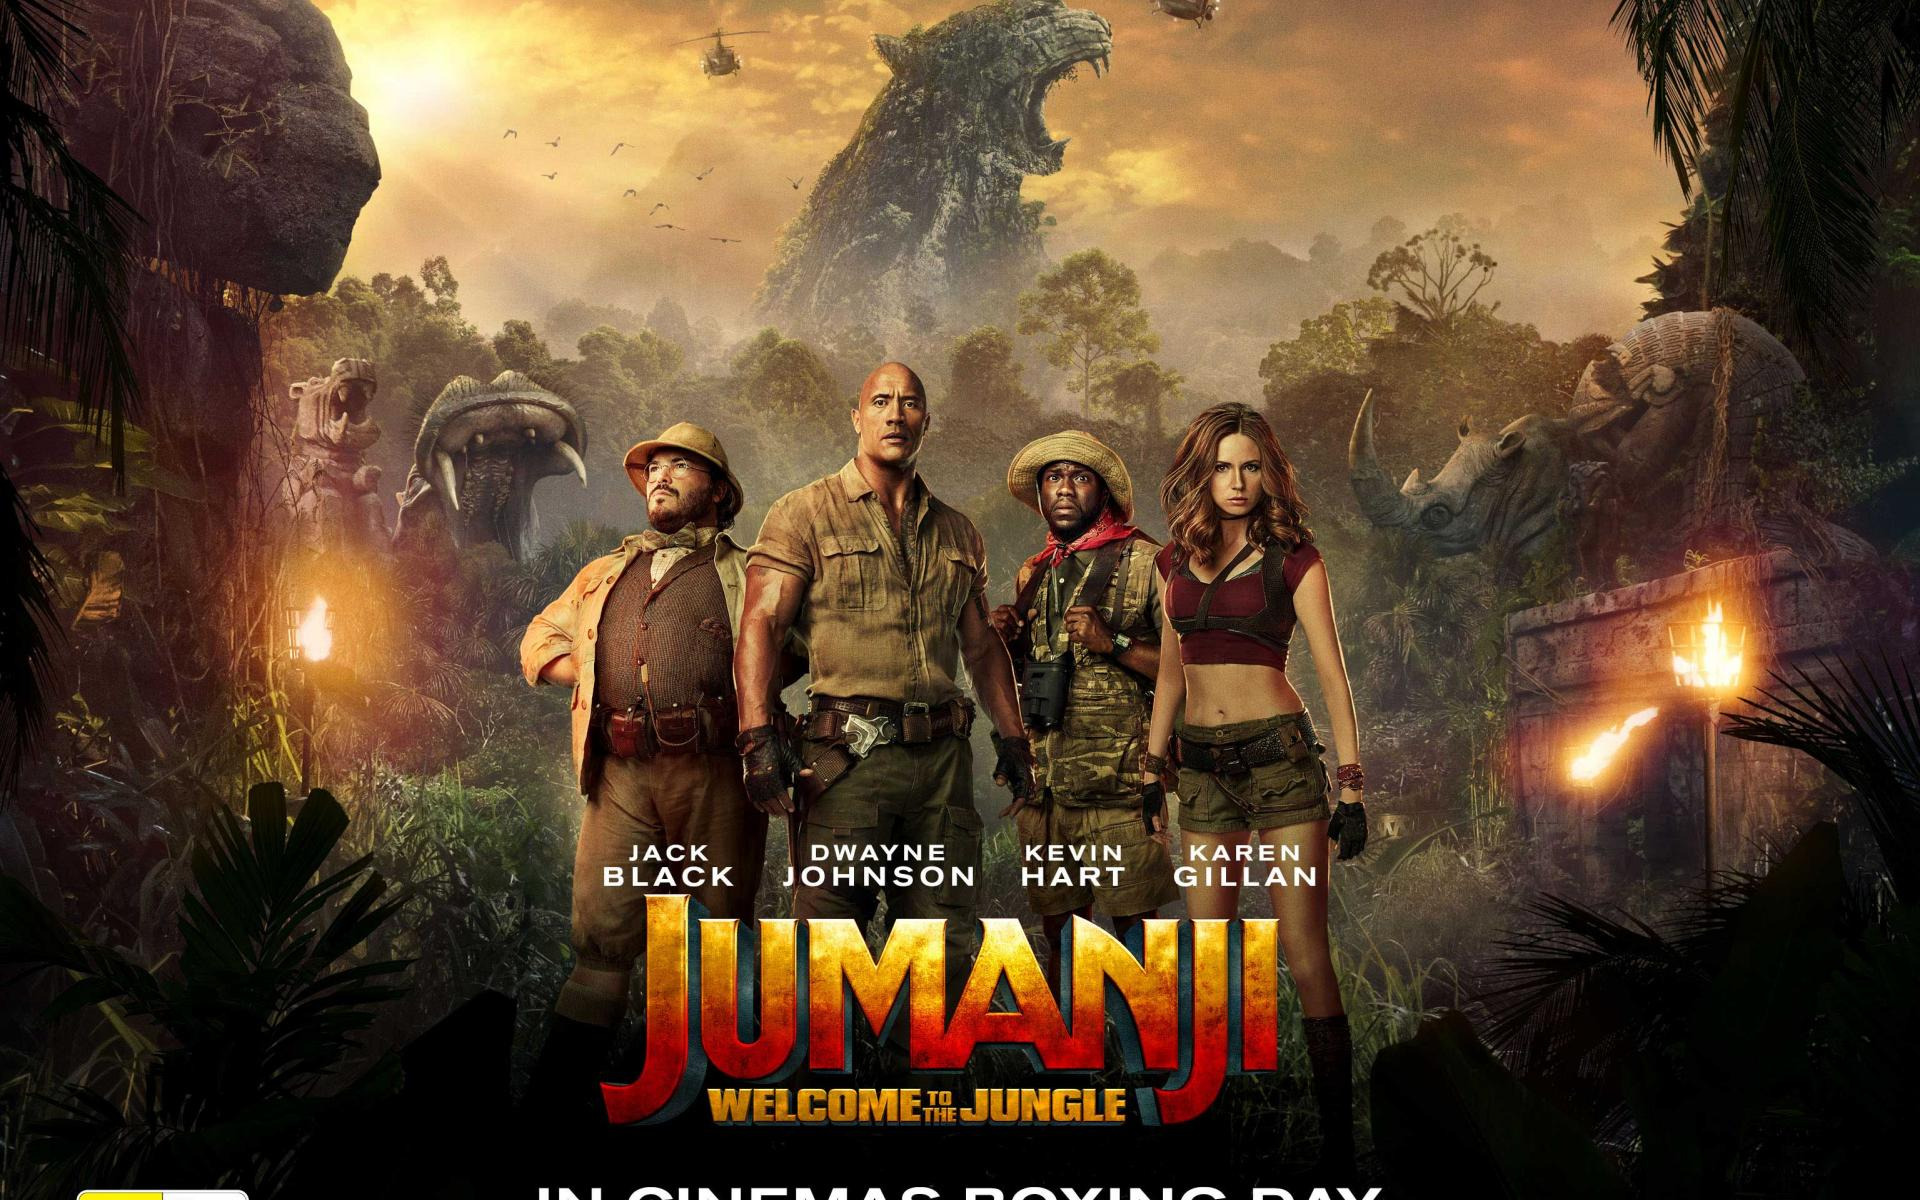 Jumanji Welcome to the Jungle Wallpaper 9   3071 X 2315 stmednet 1920x1200